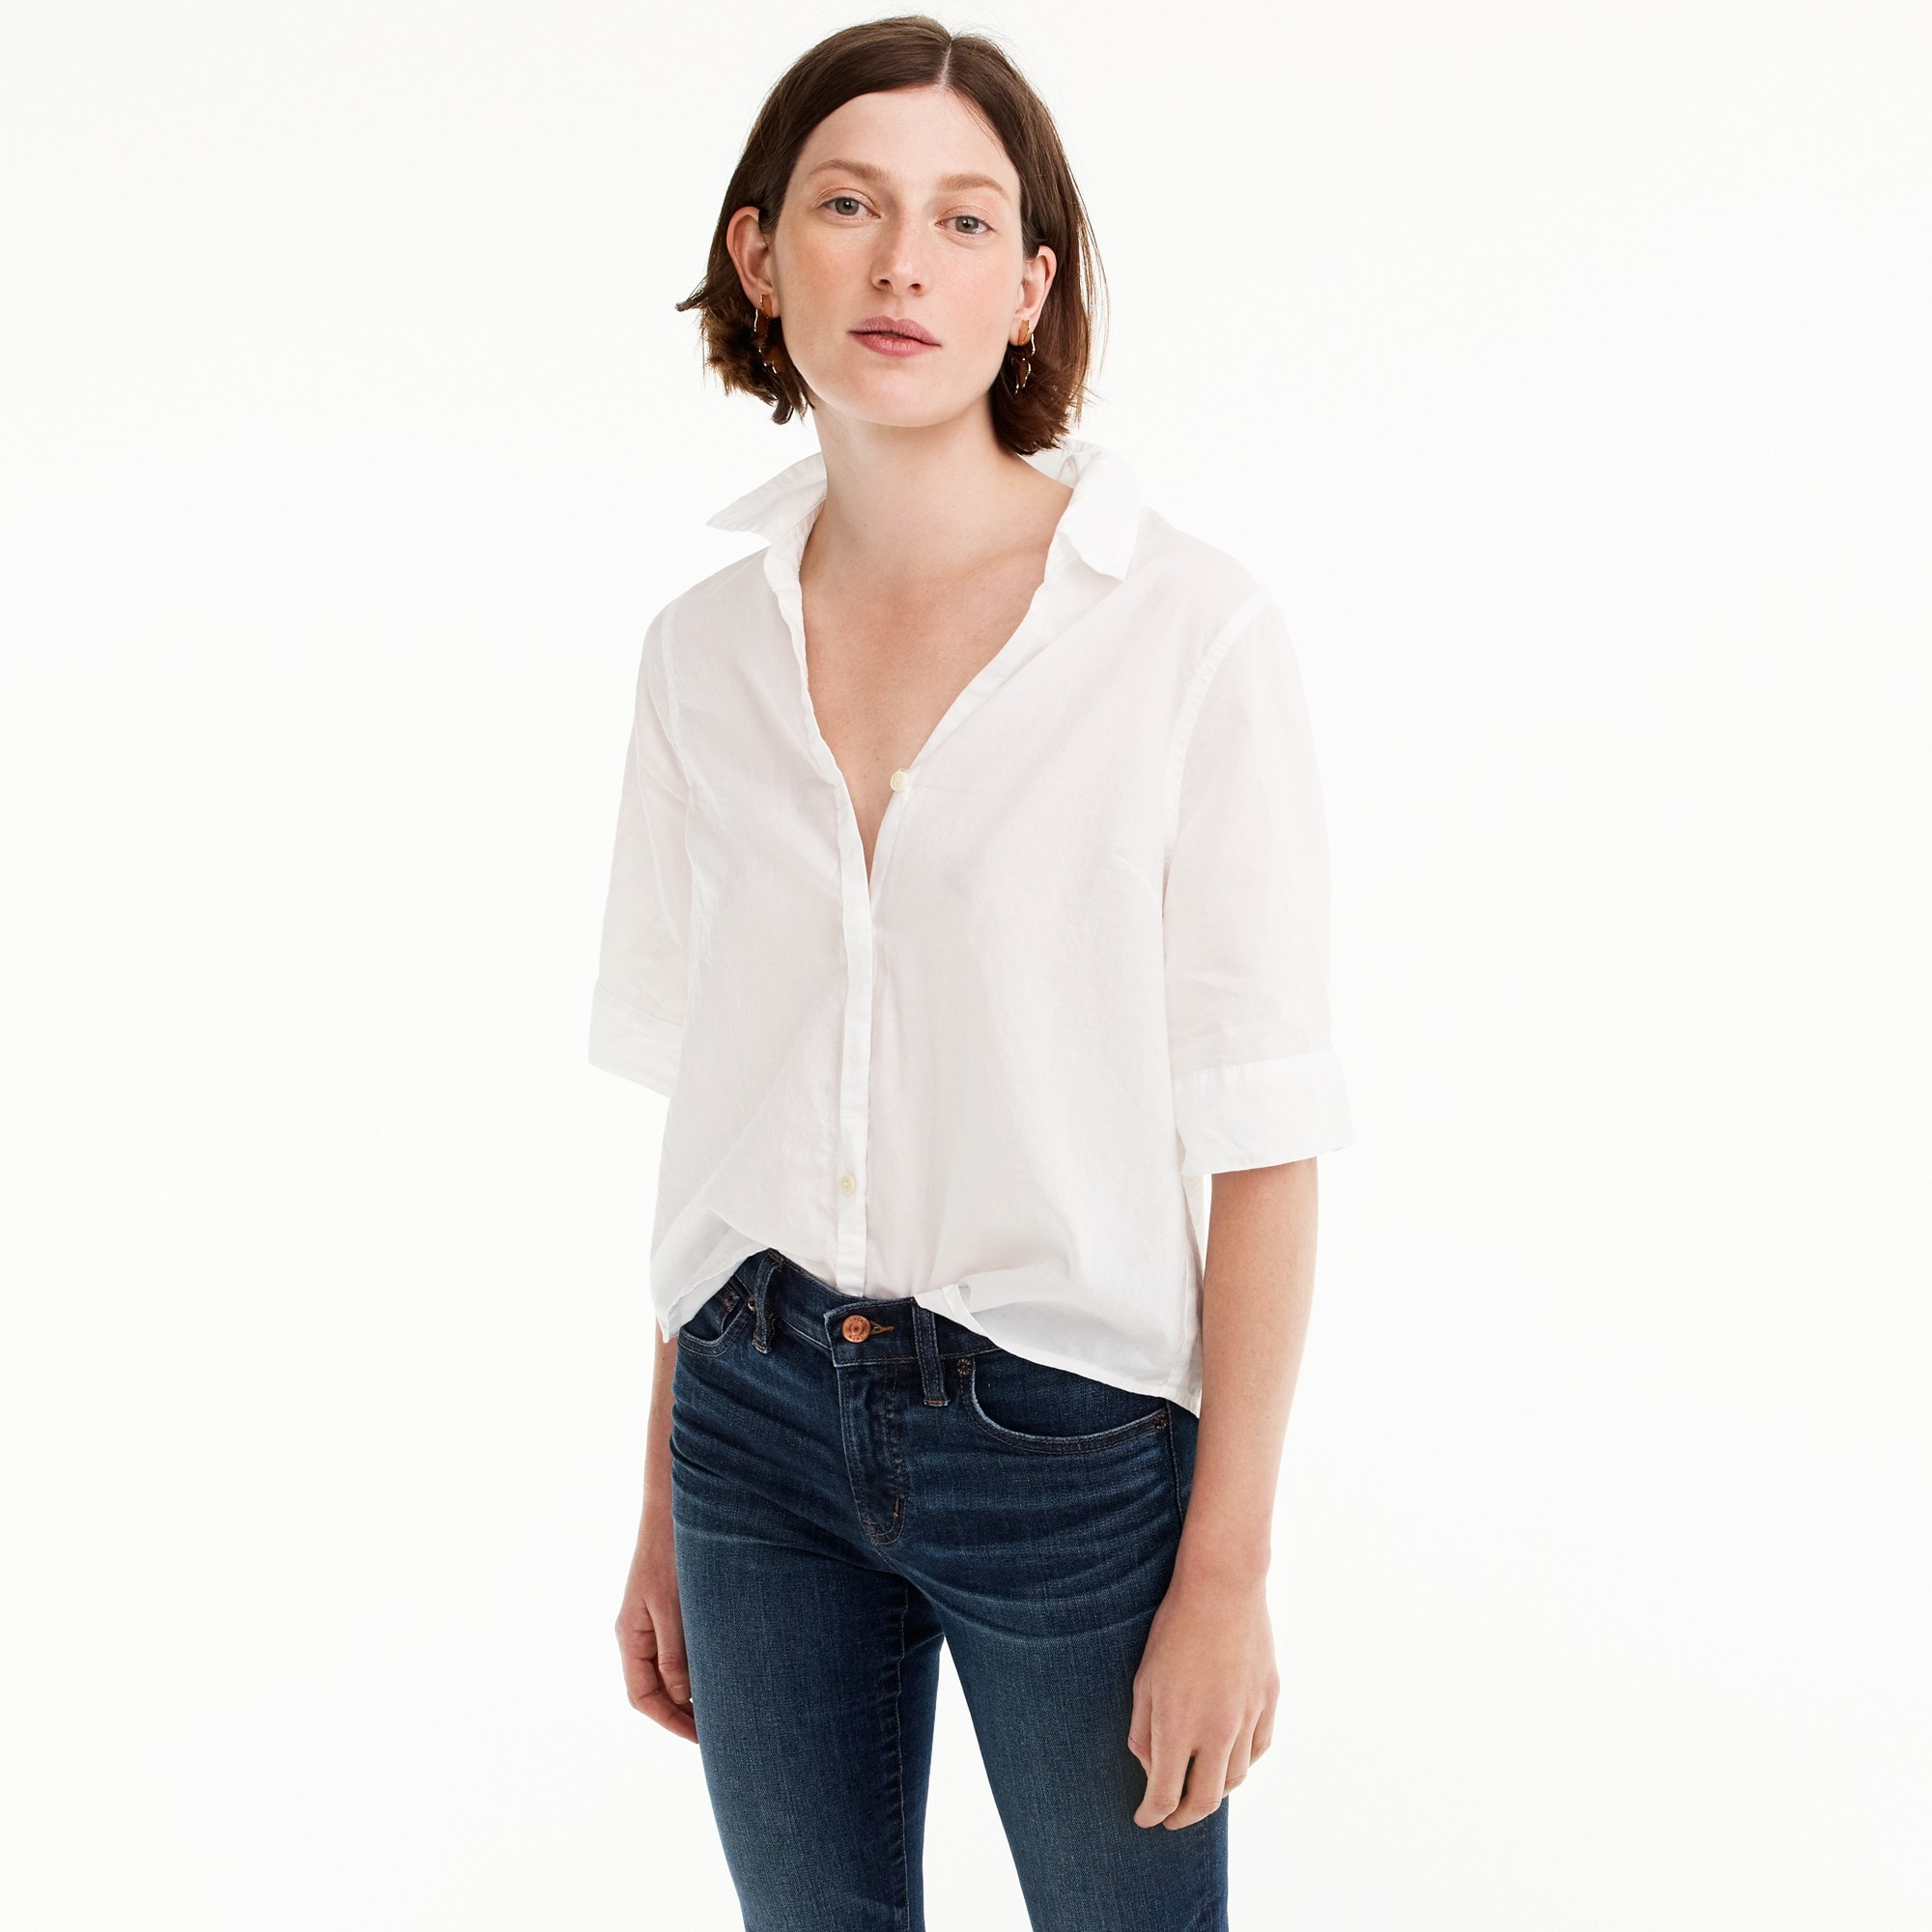 Short-sleeve button-up shirt women shirts & tops c